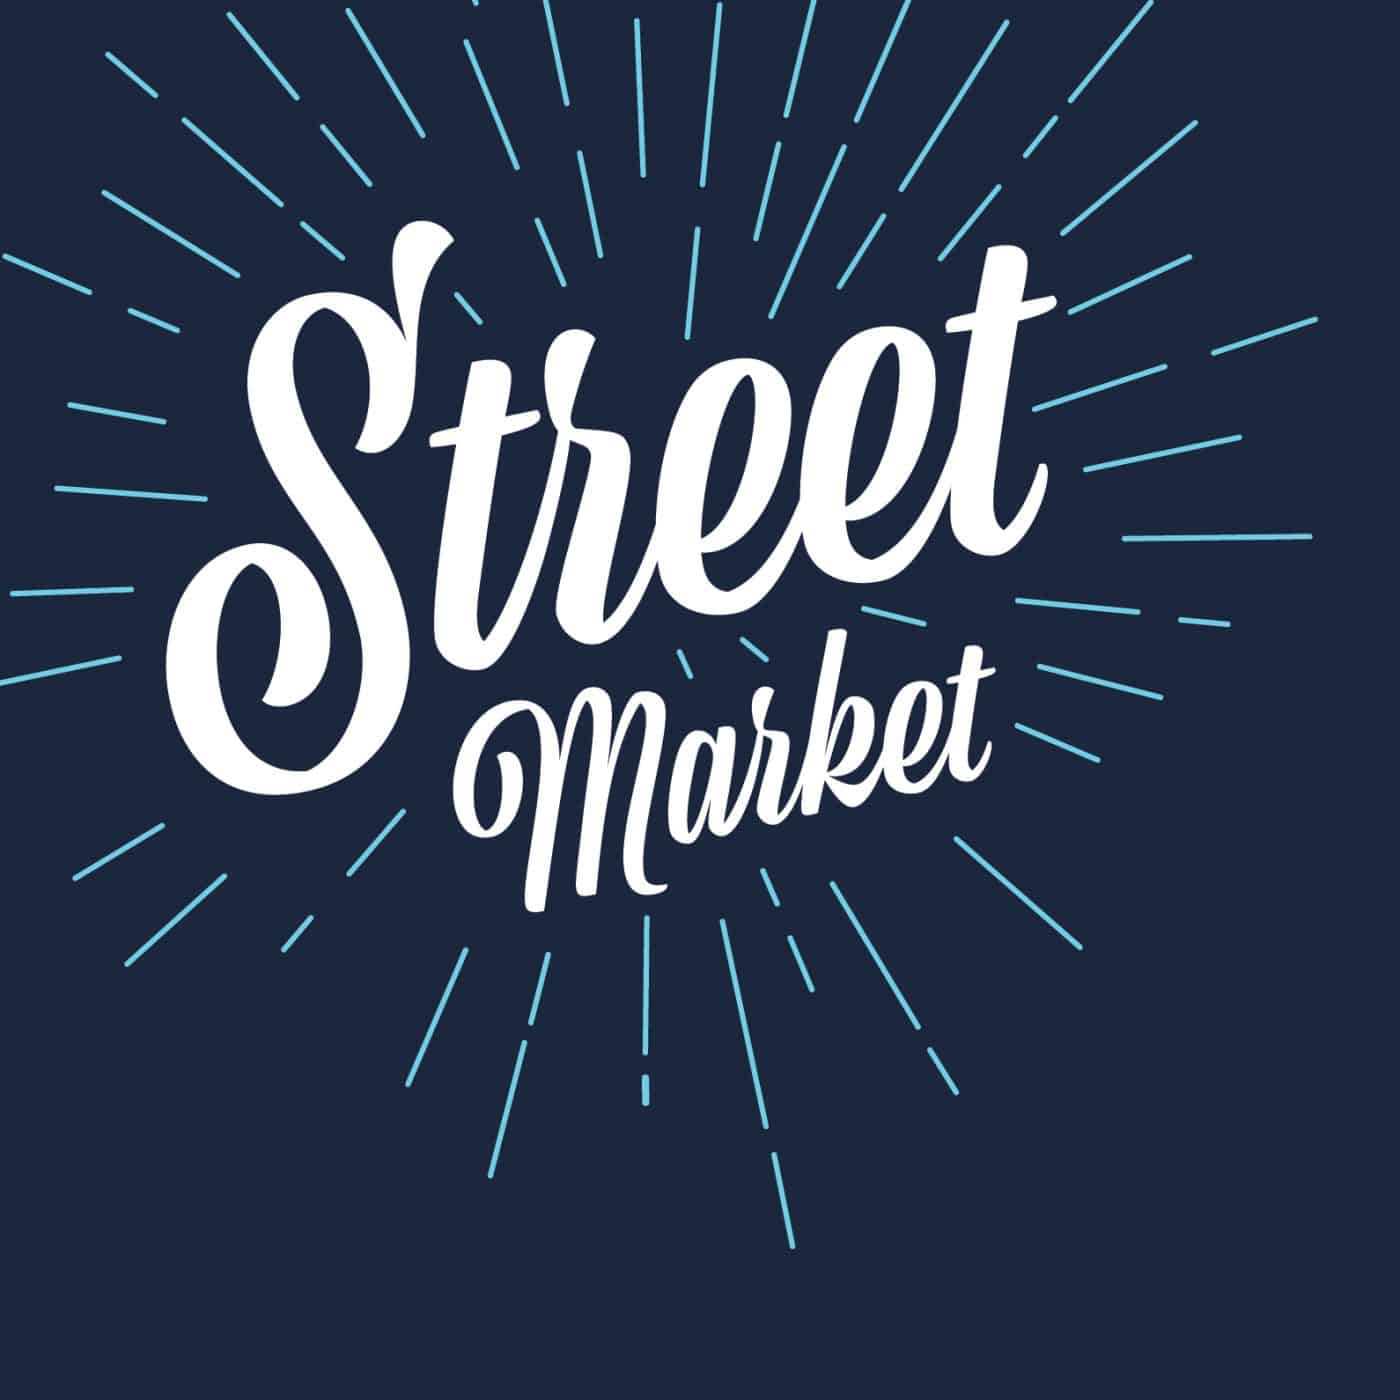 Streetmarket 2017: A Curated Holiday Pop-Up